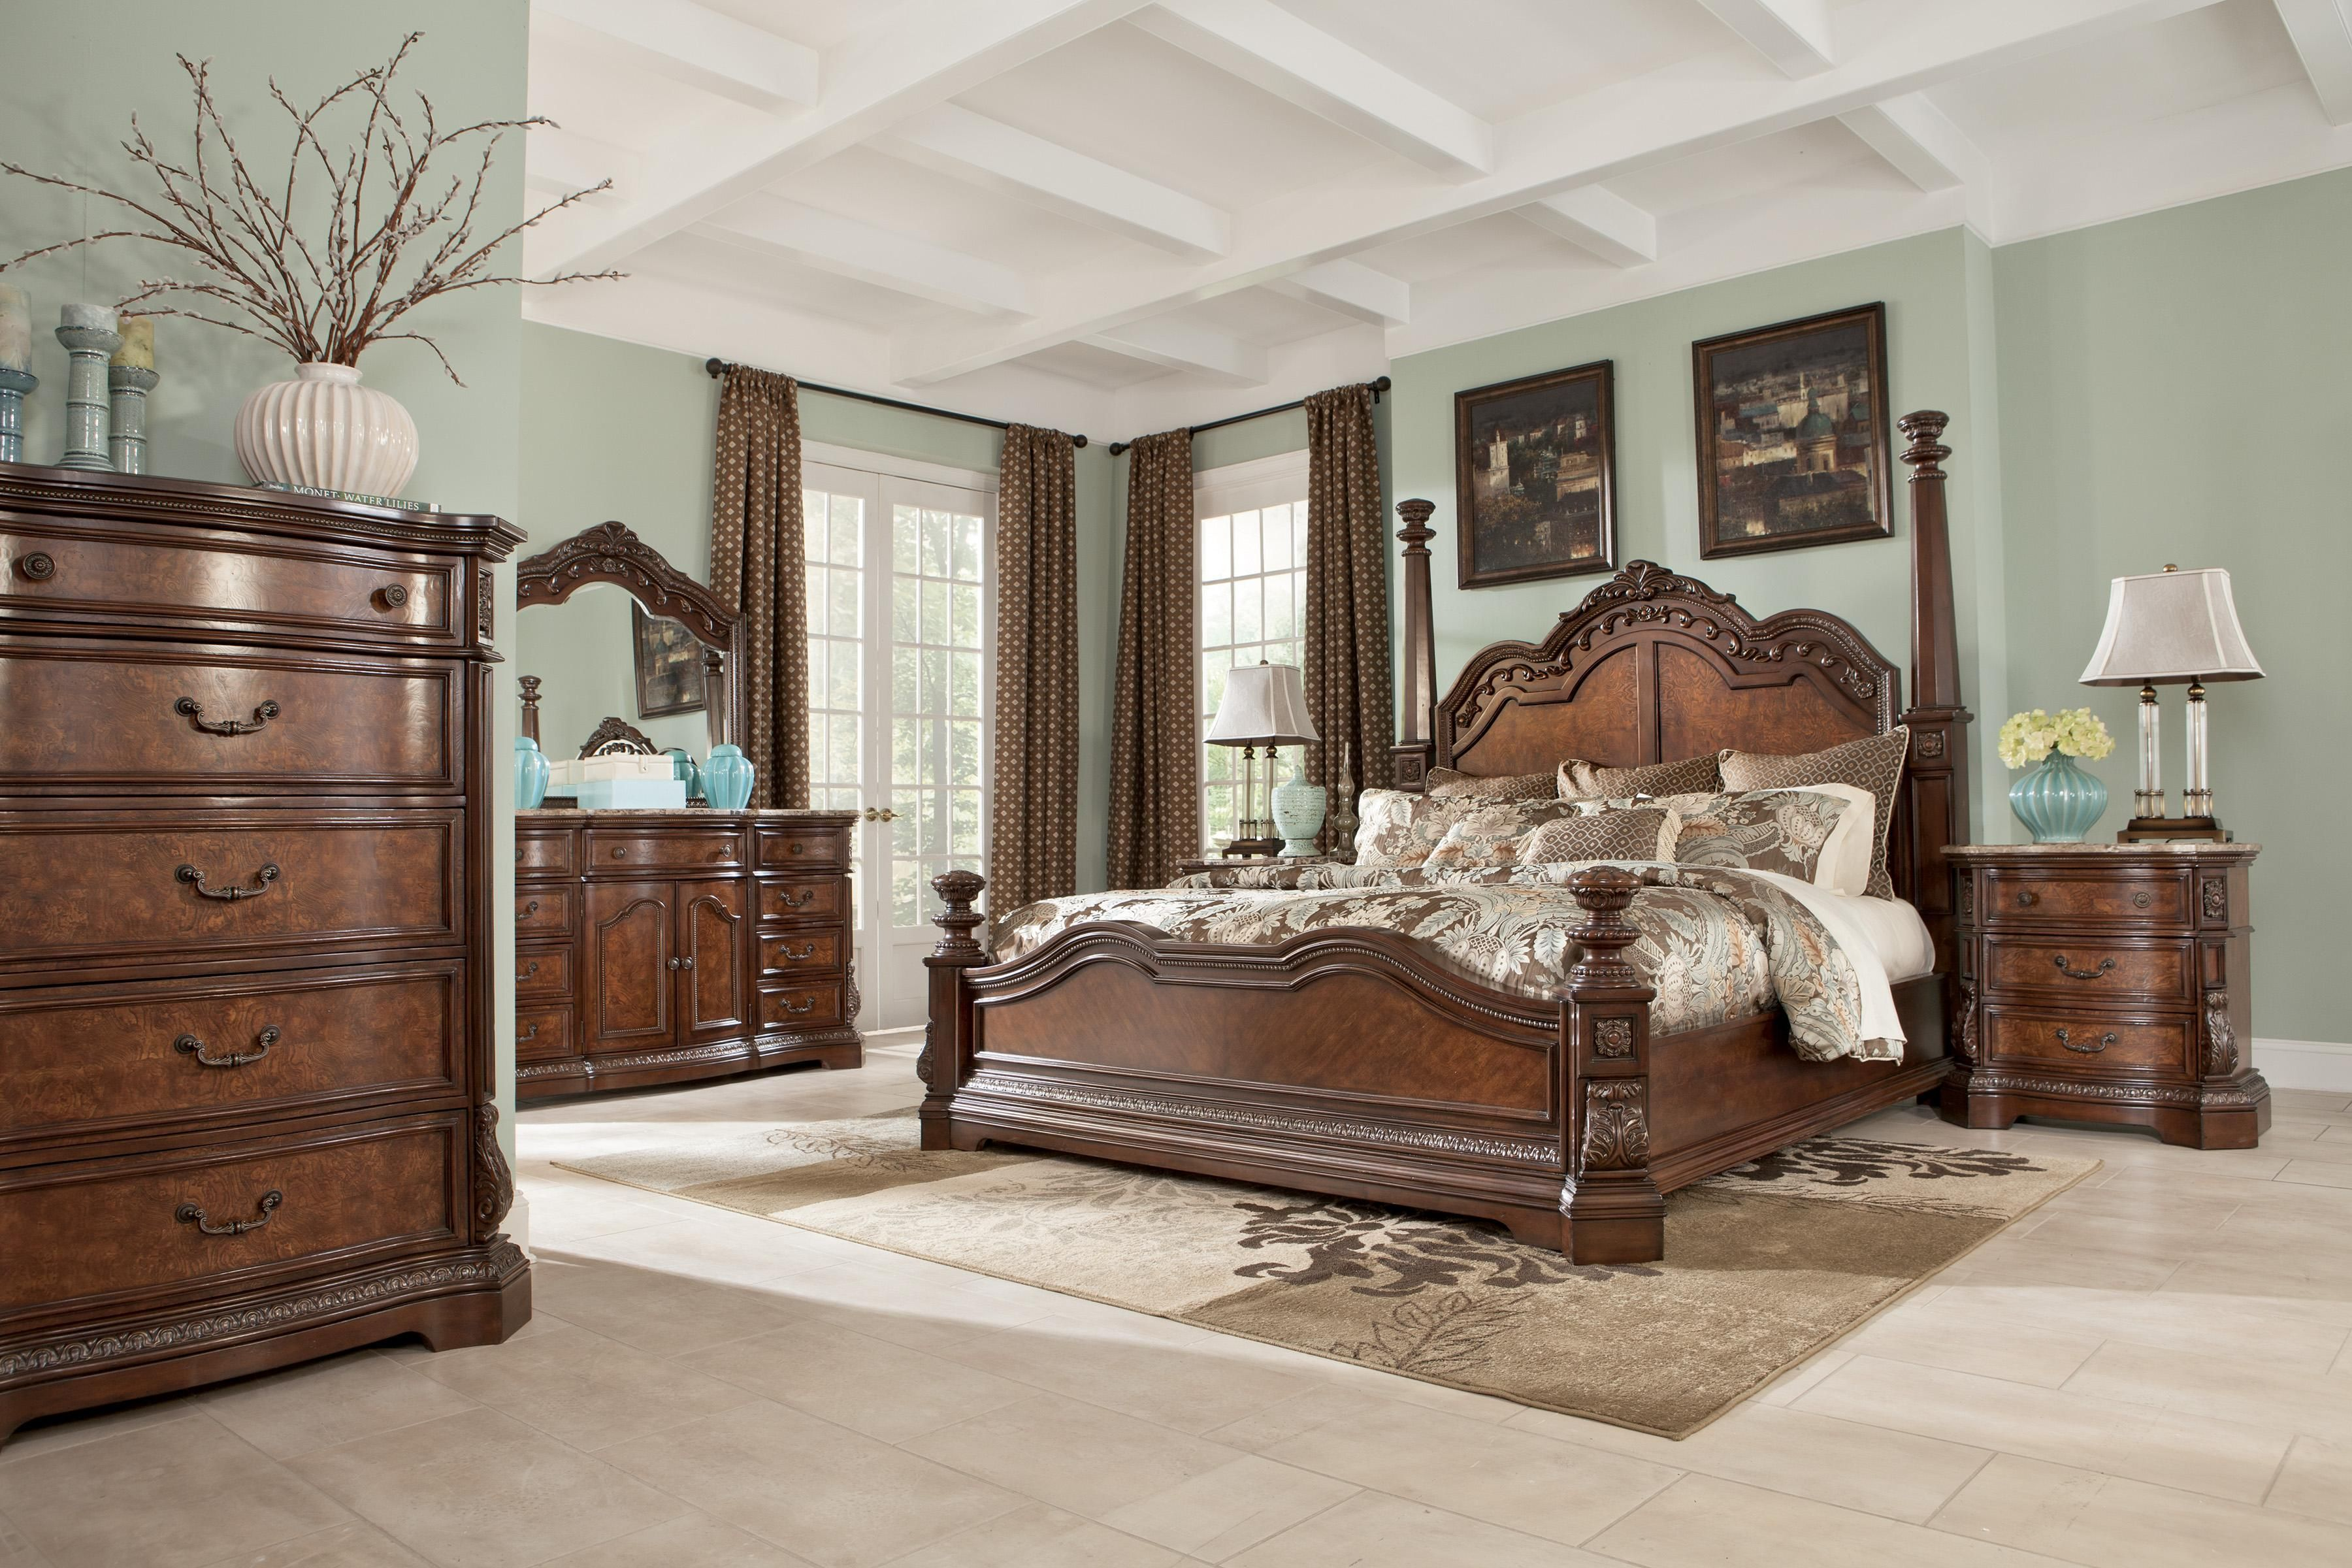 Ledelle Poster Bedroom Set with Tall Headboard Posts in ...